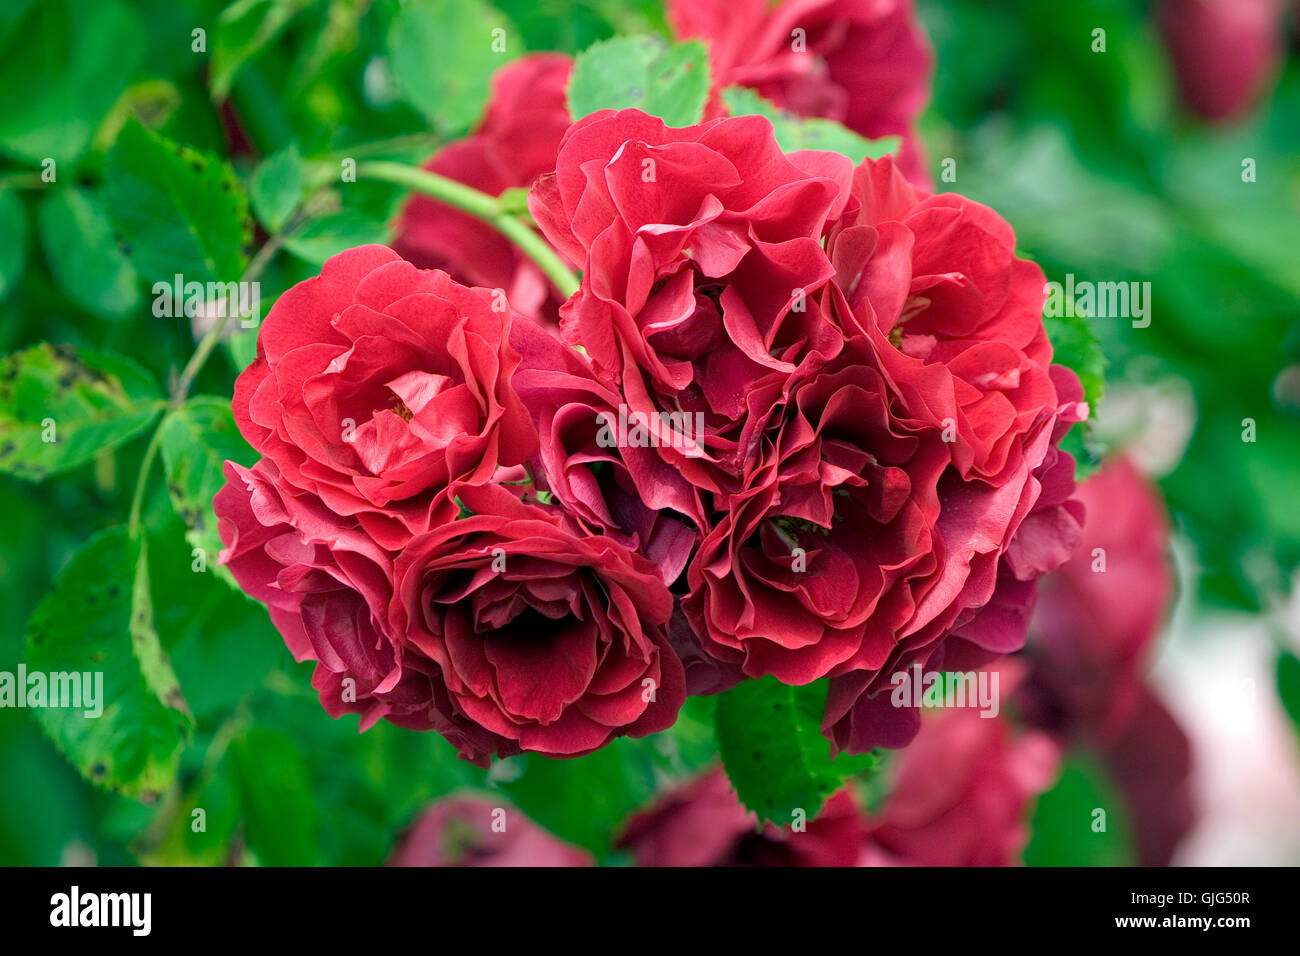 climbing rose red flame stock photo 114681191 alamy. Black Bedroom Furniture Sets. Home Design Ideas